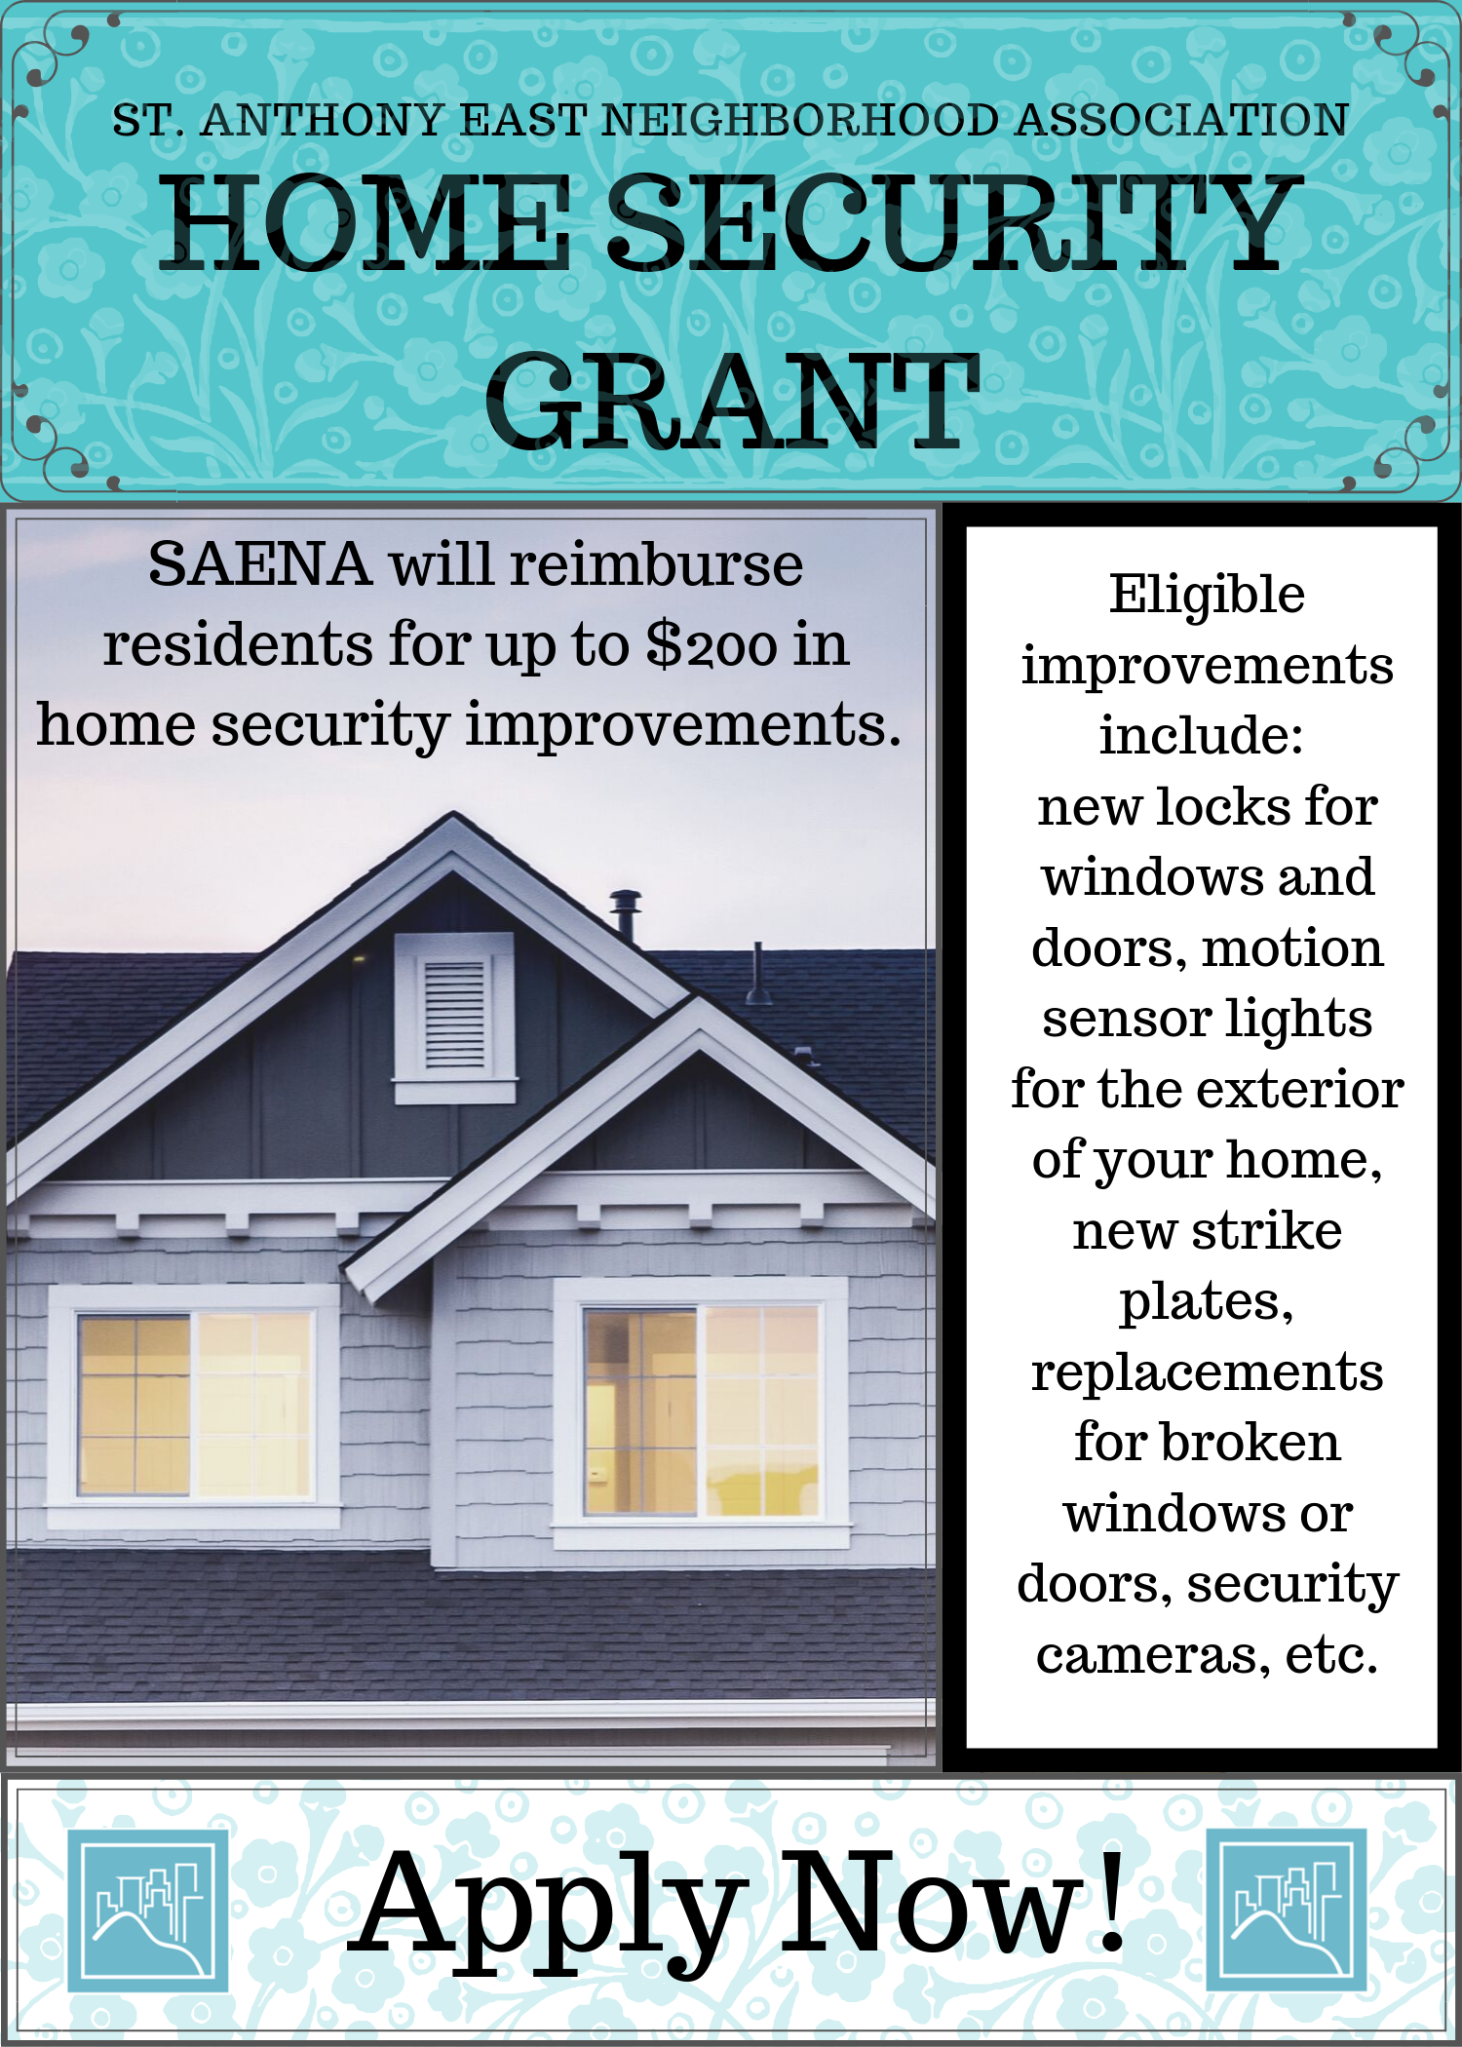 Details of the home security grant program; contact for info